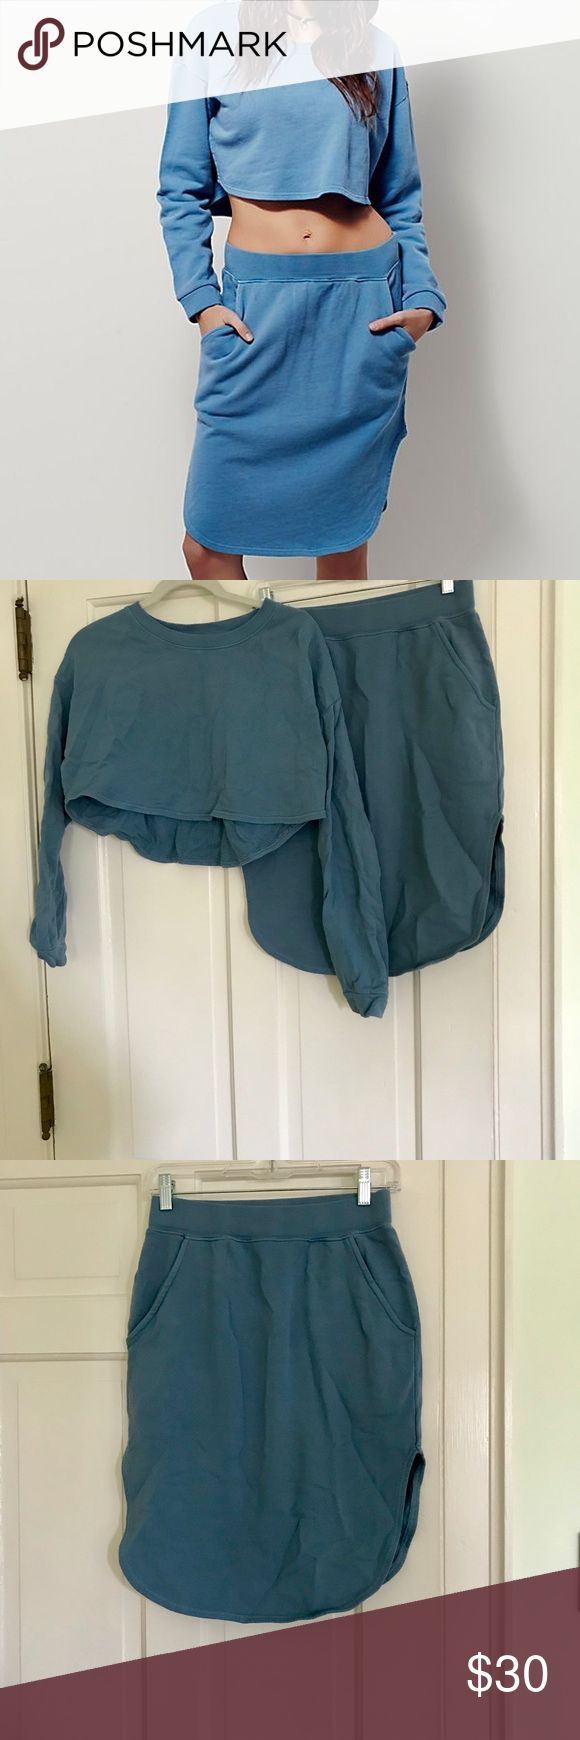 Free People Moon Beams Skirt Set, XS Free People moon beams set in mystic blue size xs. Like new, in excellent condition. Comfortable sweatshirt material (100% Cotton), Top is cropped, skirt has elastic waistband). Waist approx 13 inches across when flat and unstretched; approx 22 inches long. Free People Skirts Skirt Sets